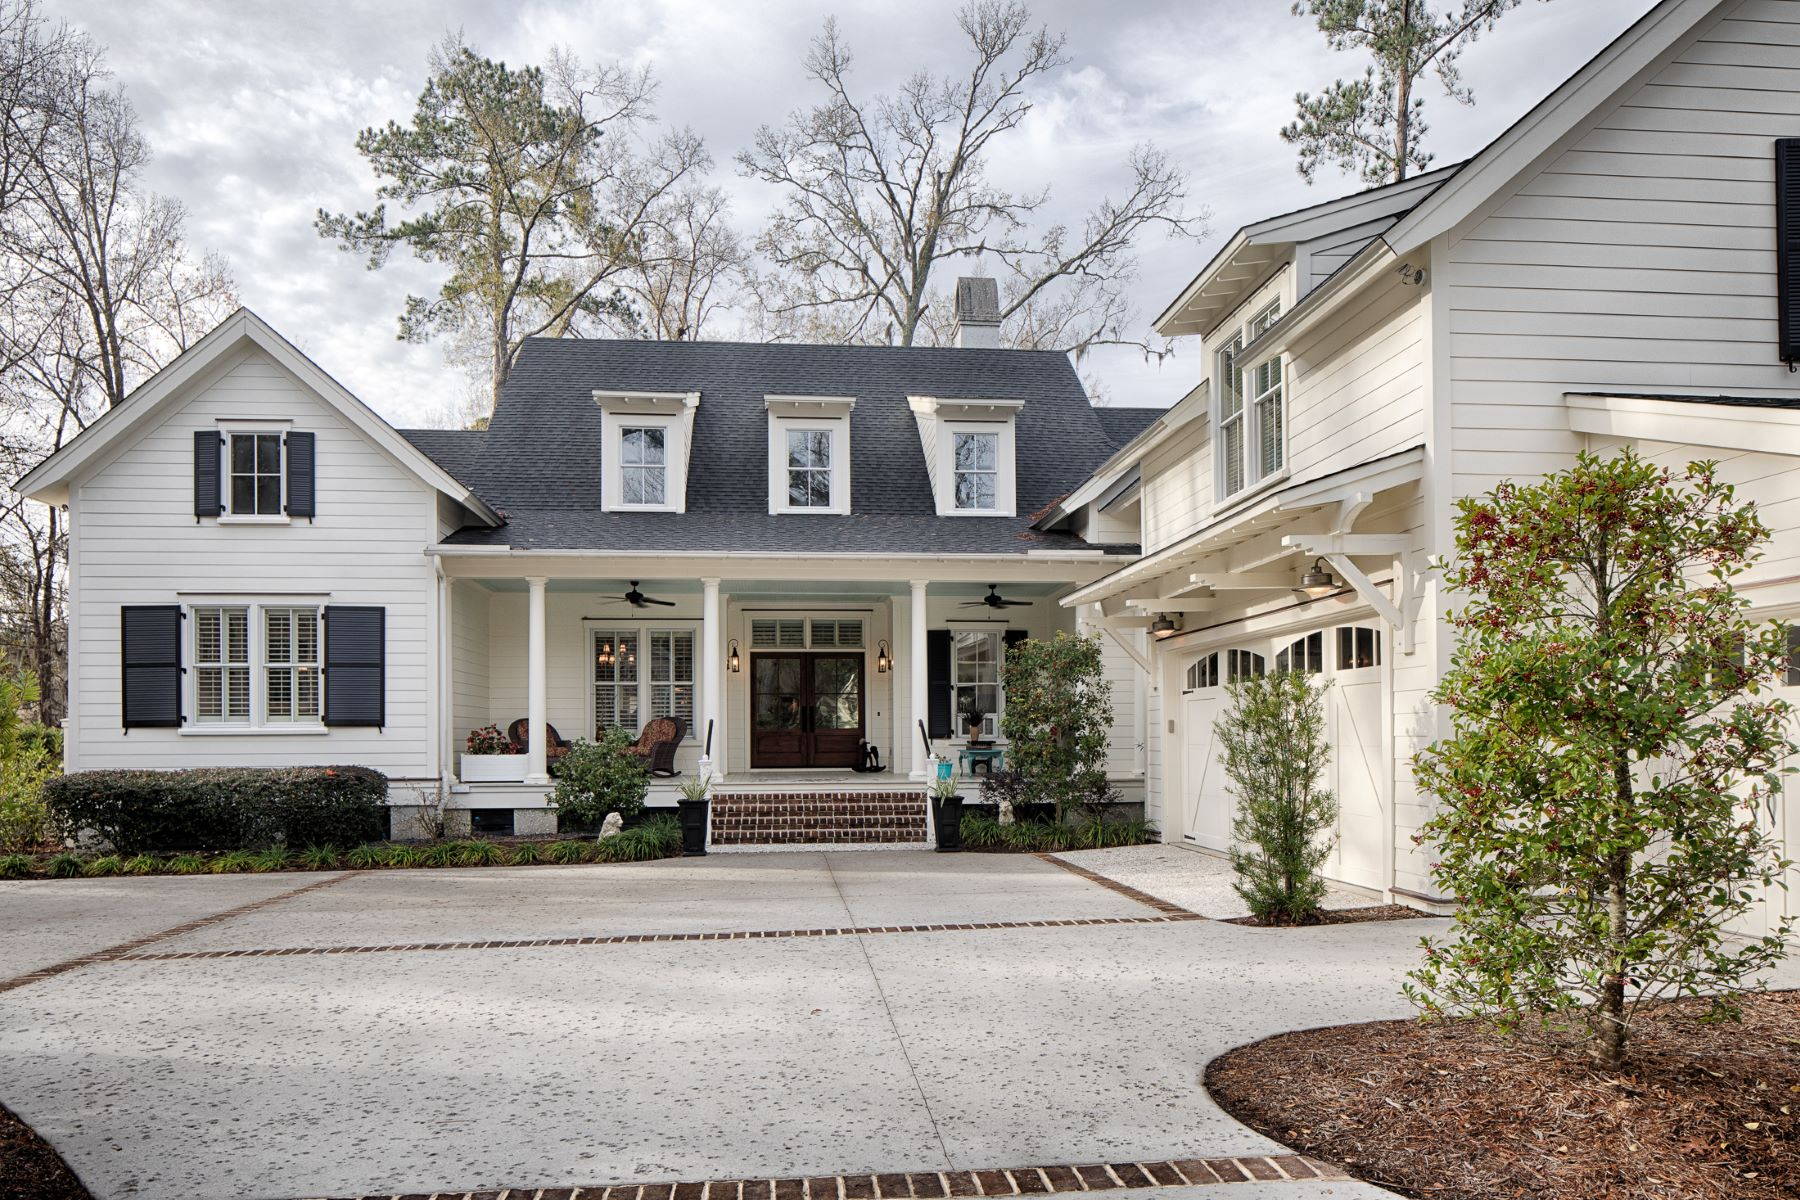 Single Family Homes for Active at 6 Sandy Hill Lane Okatie, South Carolina 29909 United States